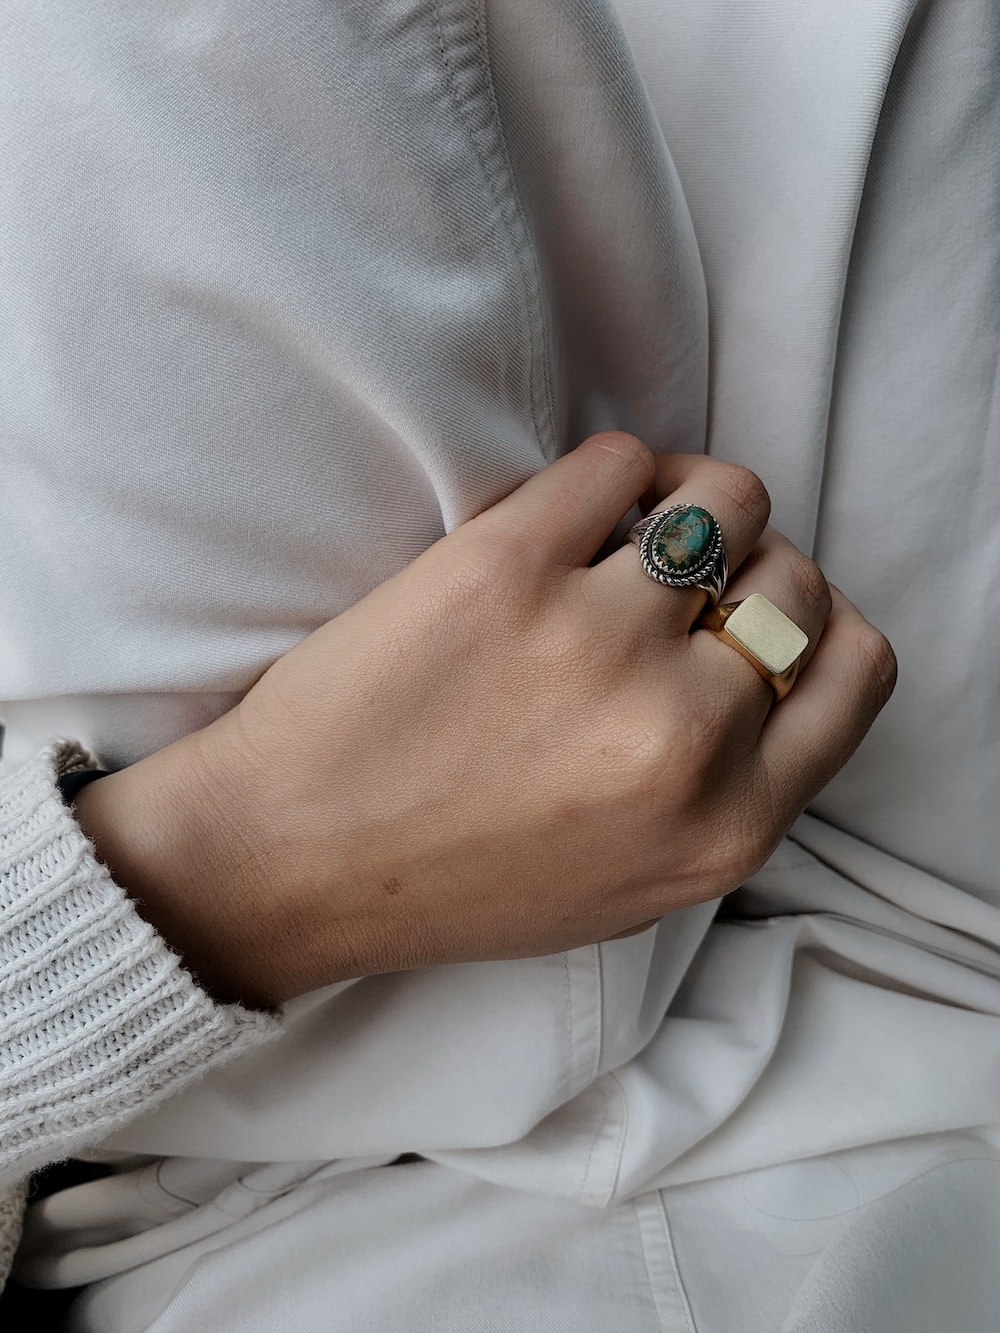 person wearing silver and green ring